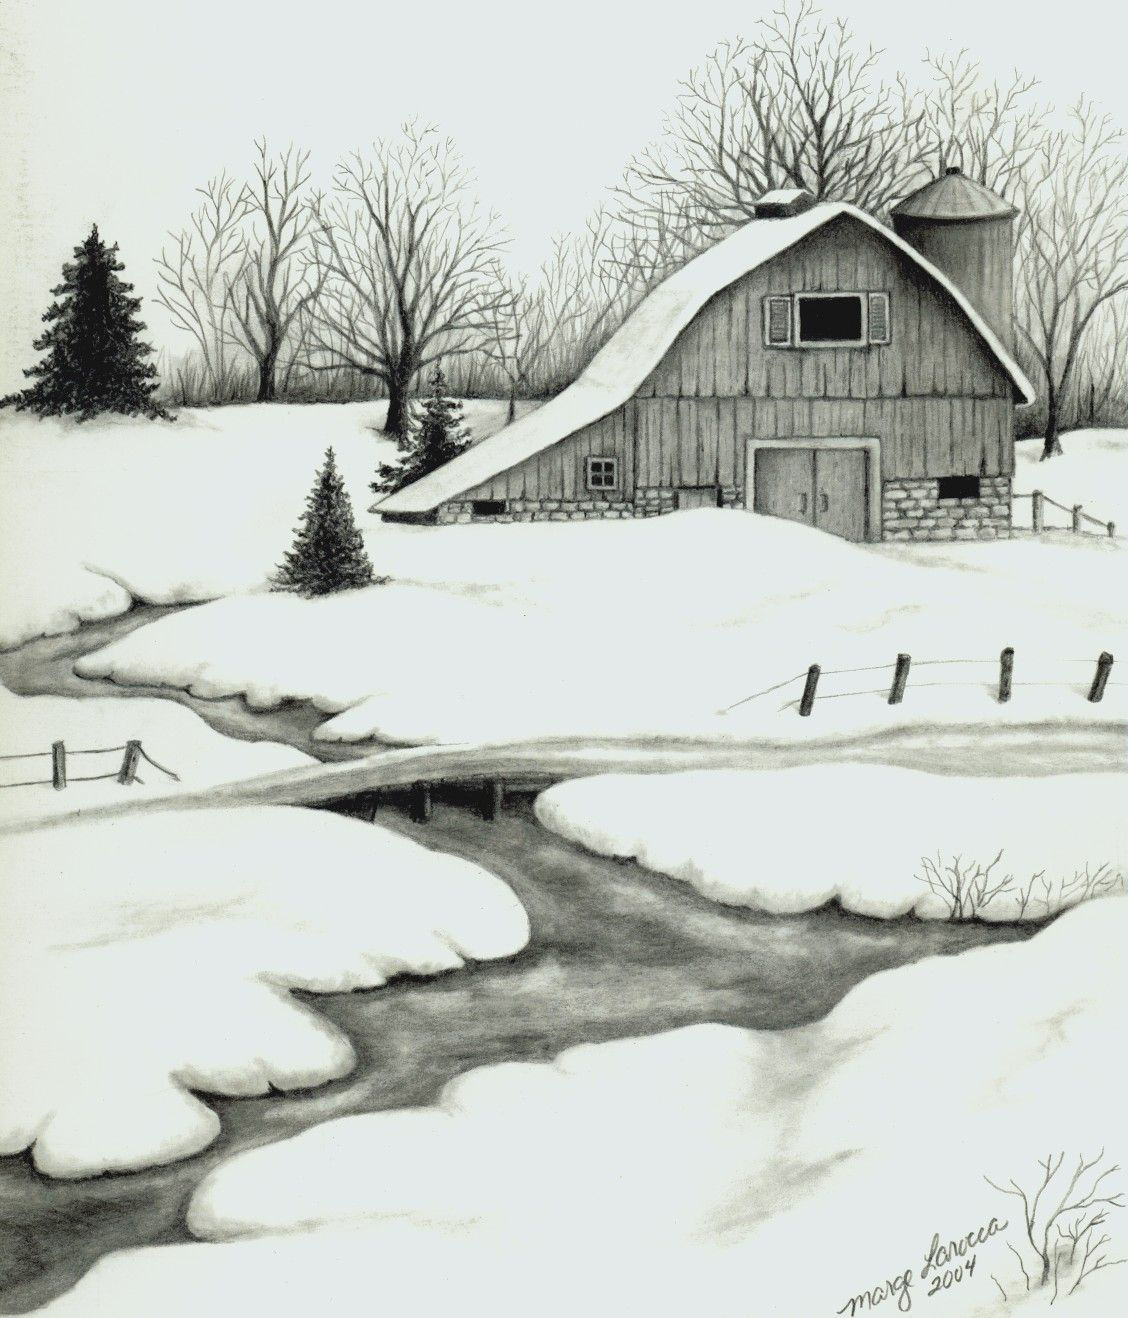 Winter barn - pencil drawing | Paint- Pen and Ink pencils ...